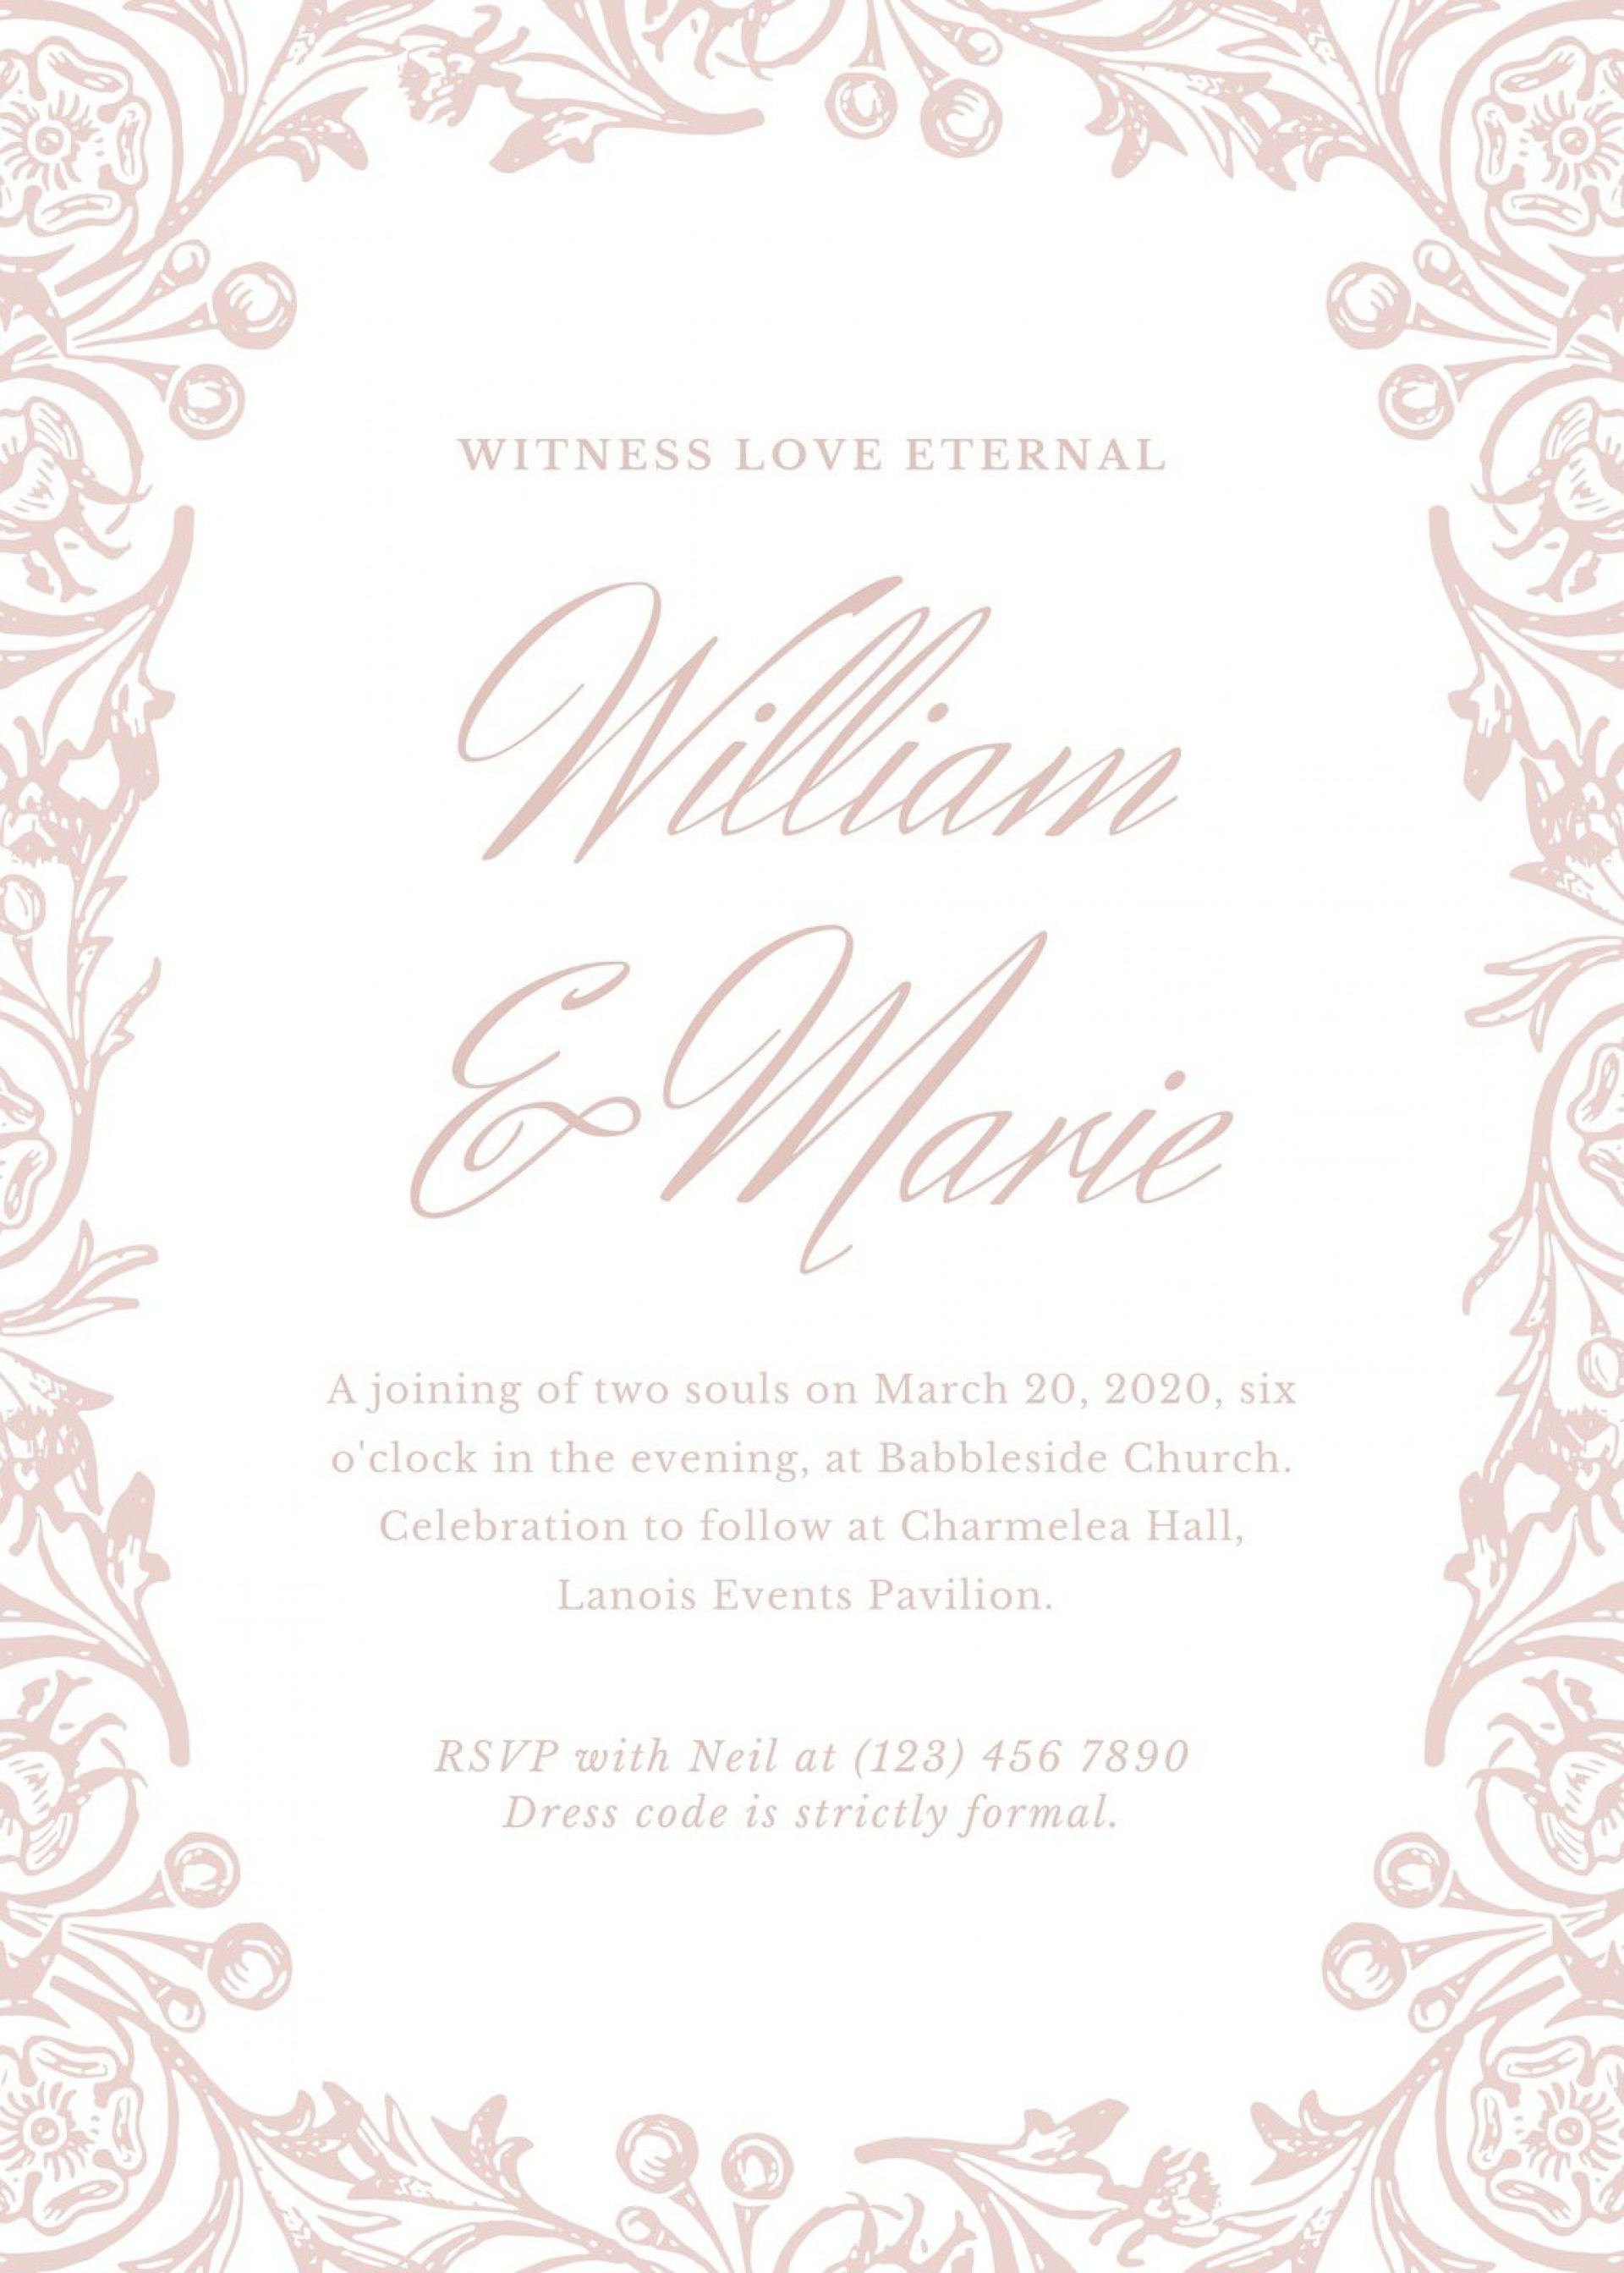 008 Beautiful Formal Wedding Invitation Template High Def  Templates Email Format Wording Free1920